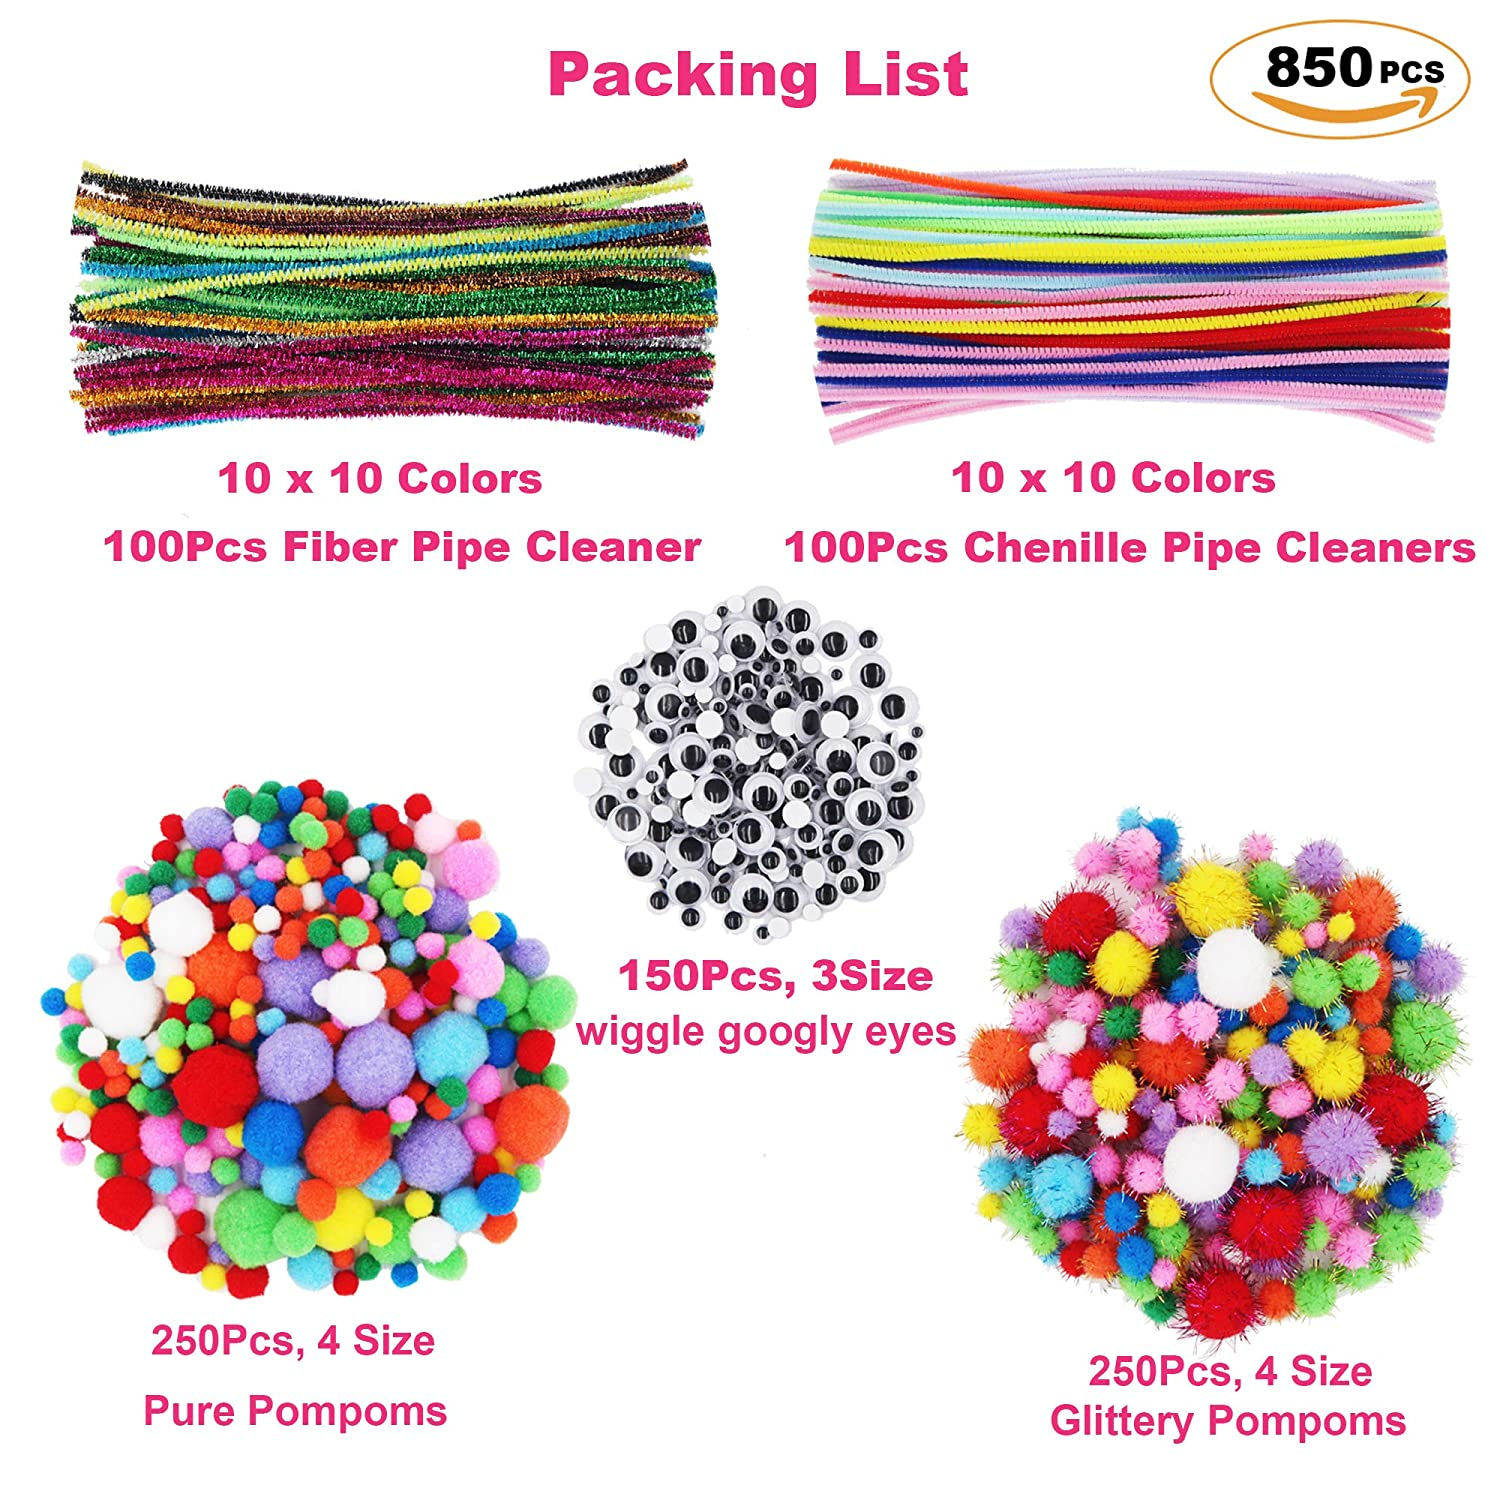 ZTWEDEN 850 Pipe Cleaners Craft Set Assorted Pompoms Multicolor Arts and Crafts Fuzzy Pom Poms Balls Wiggle Googly Eyes for DIY Creative Crafts Decorations